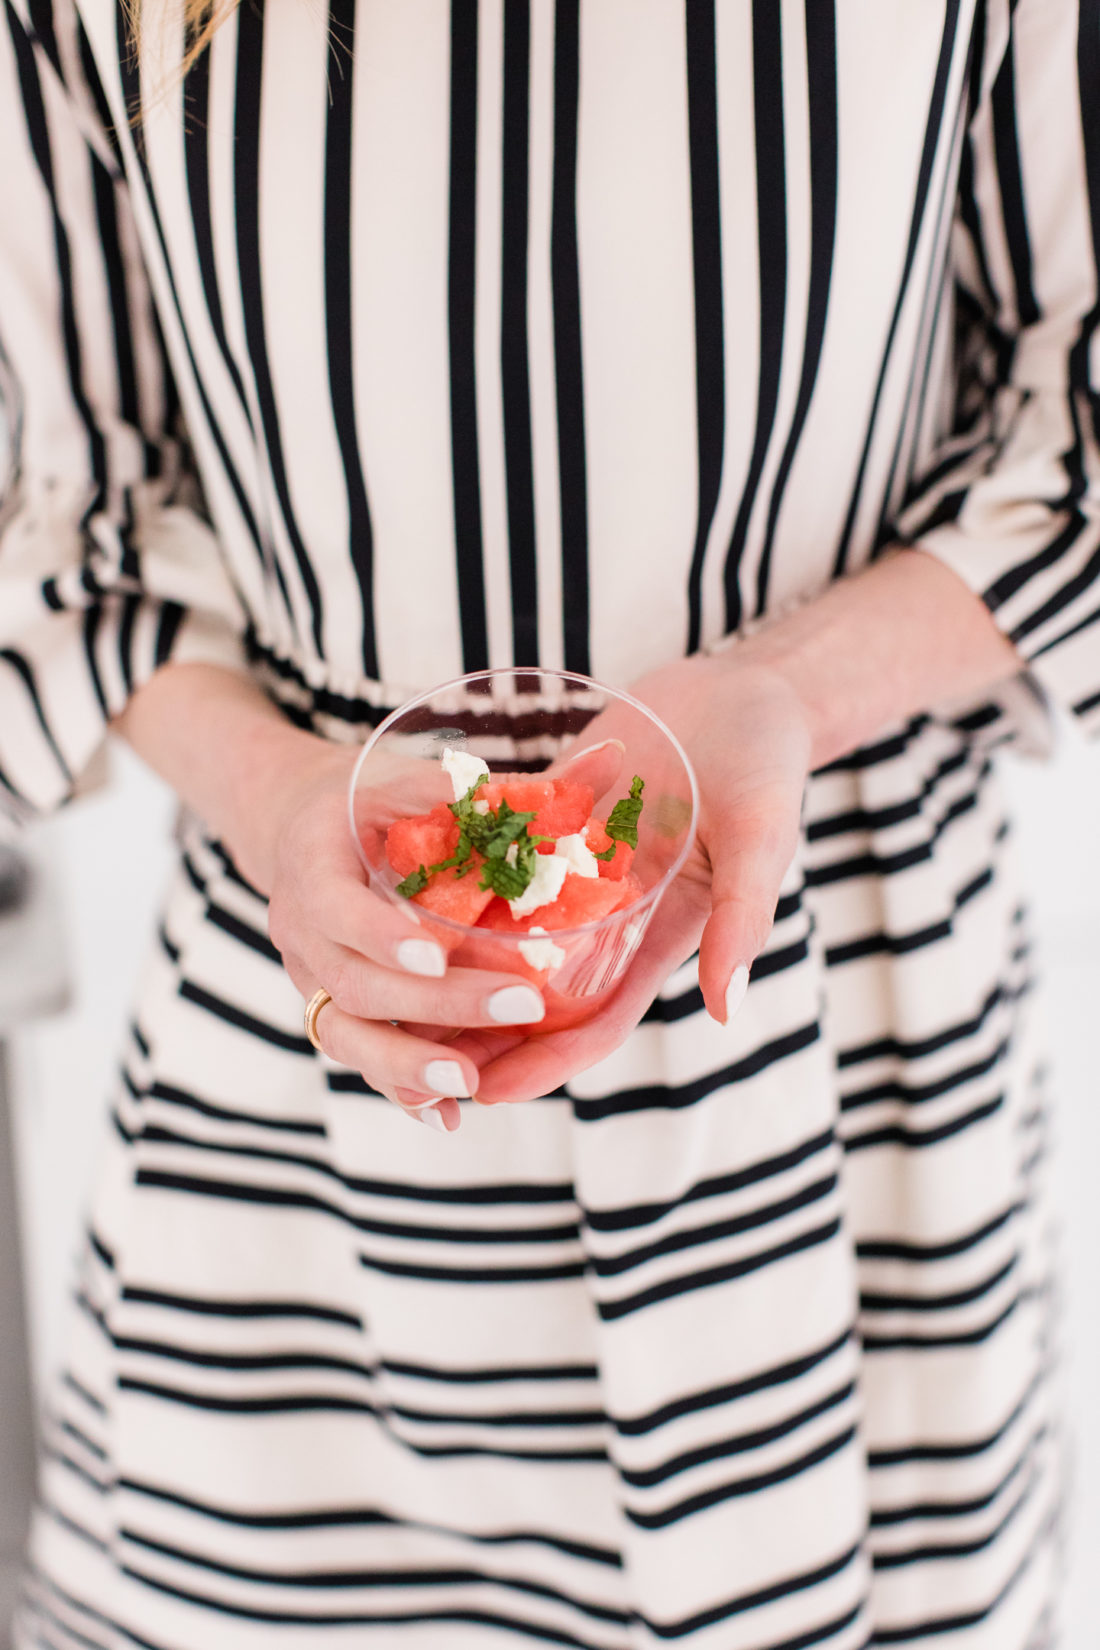 Eva Amurri Martino wears a black and white striped dress and holds an individually-portioned watermelon and mint salad at the Rosé Tasting party at her Connecticut home